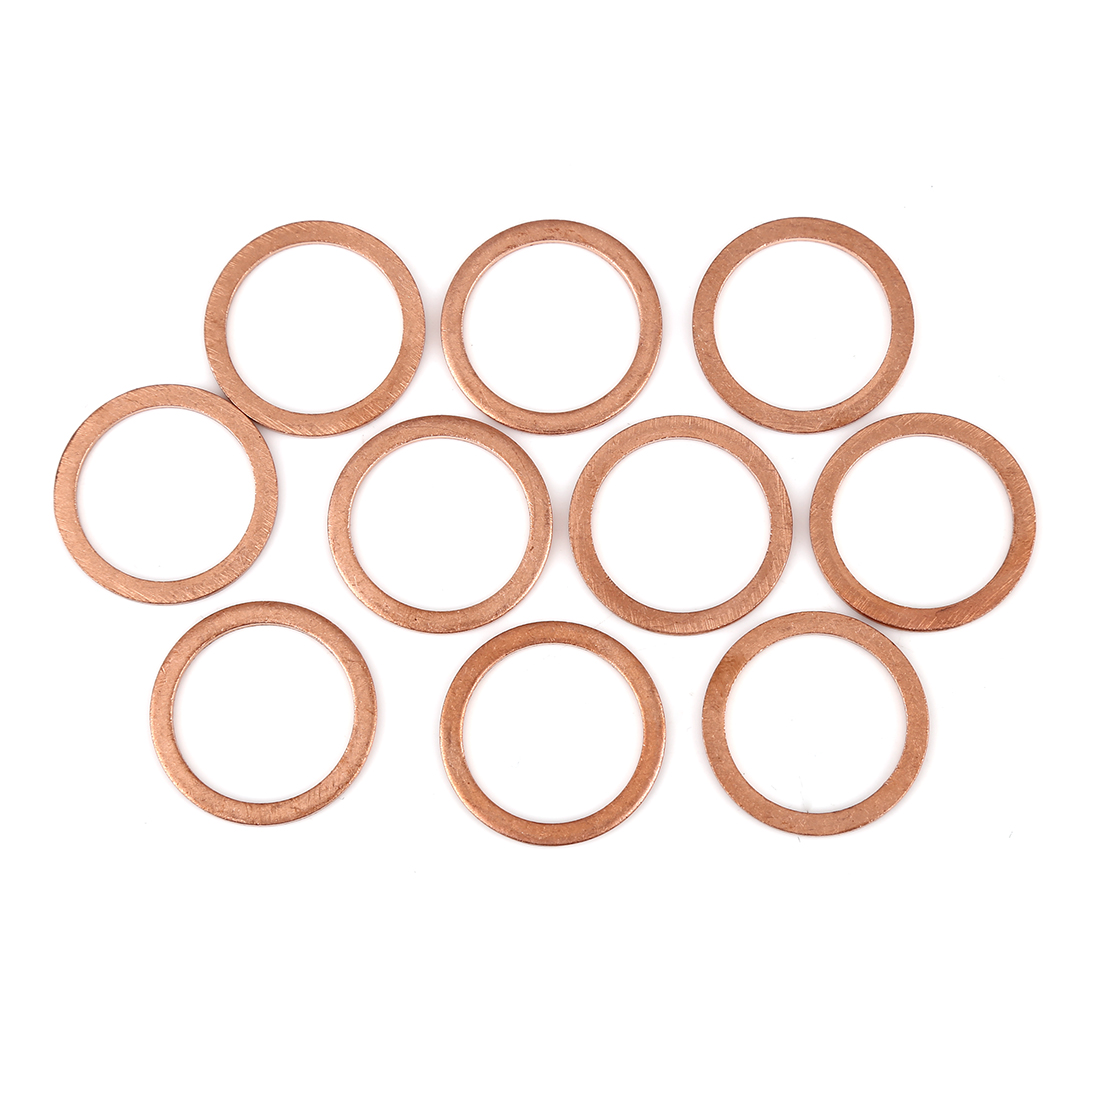 10pcs Copper Washer Flat Sealing Gasket Ring Spacer for Car 22 x 28 x 1.5mm